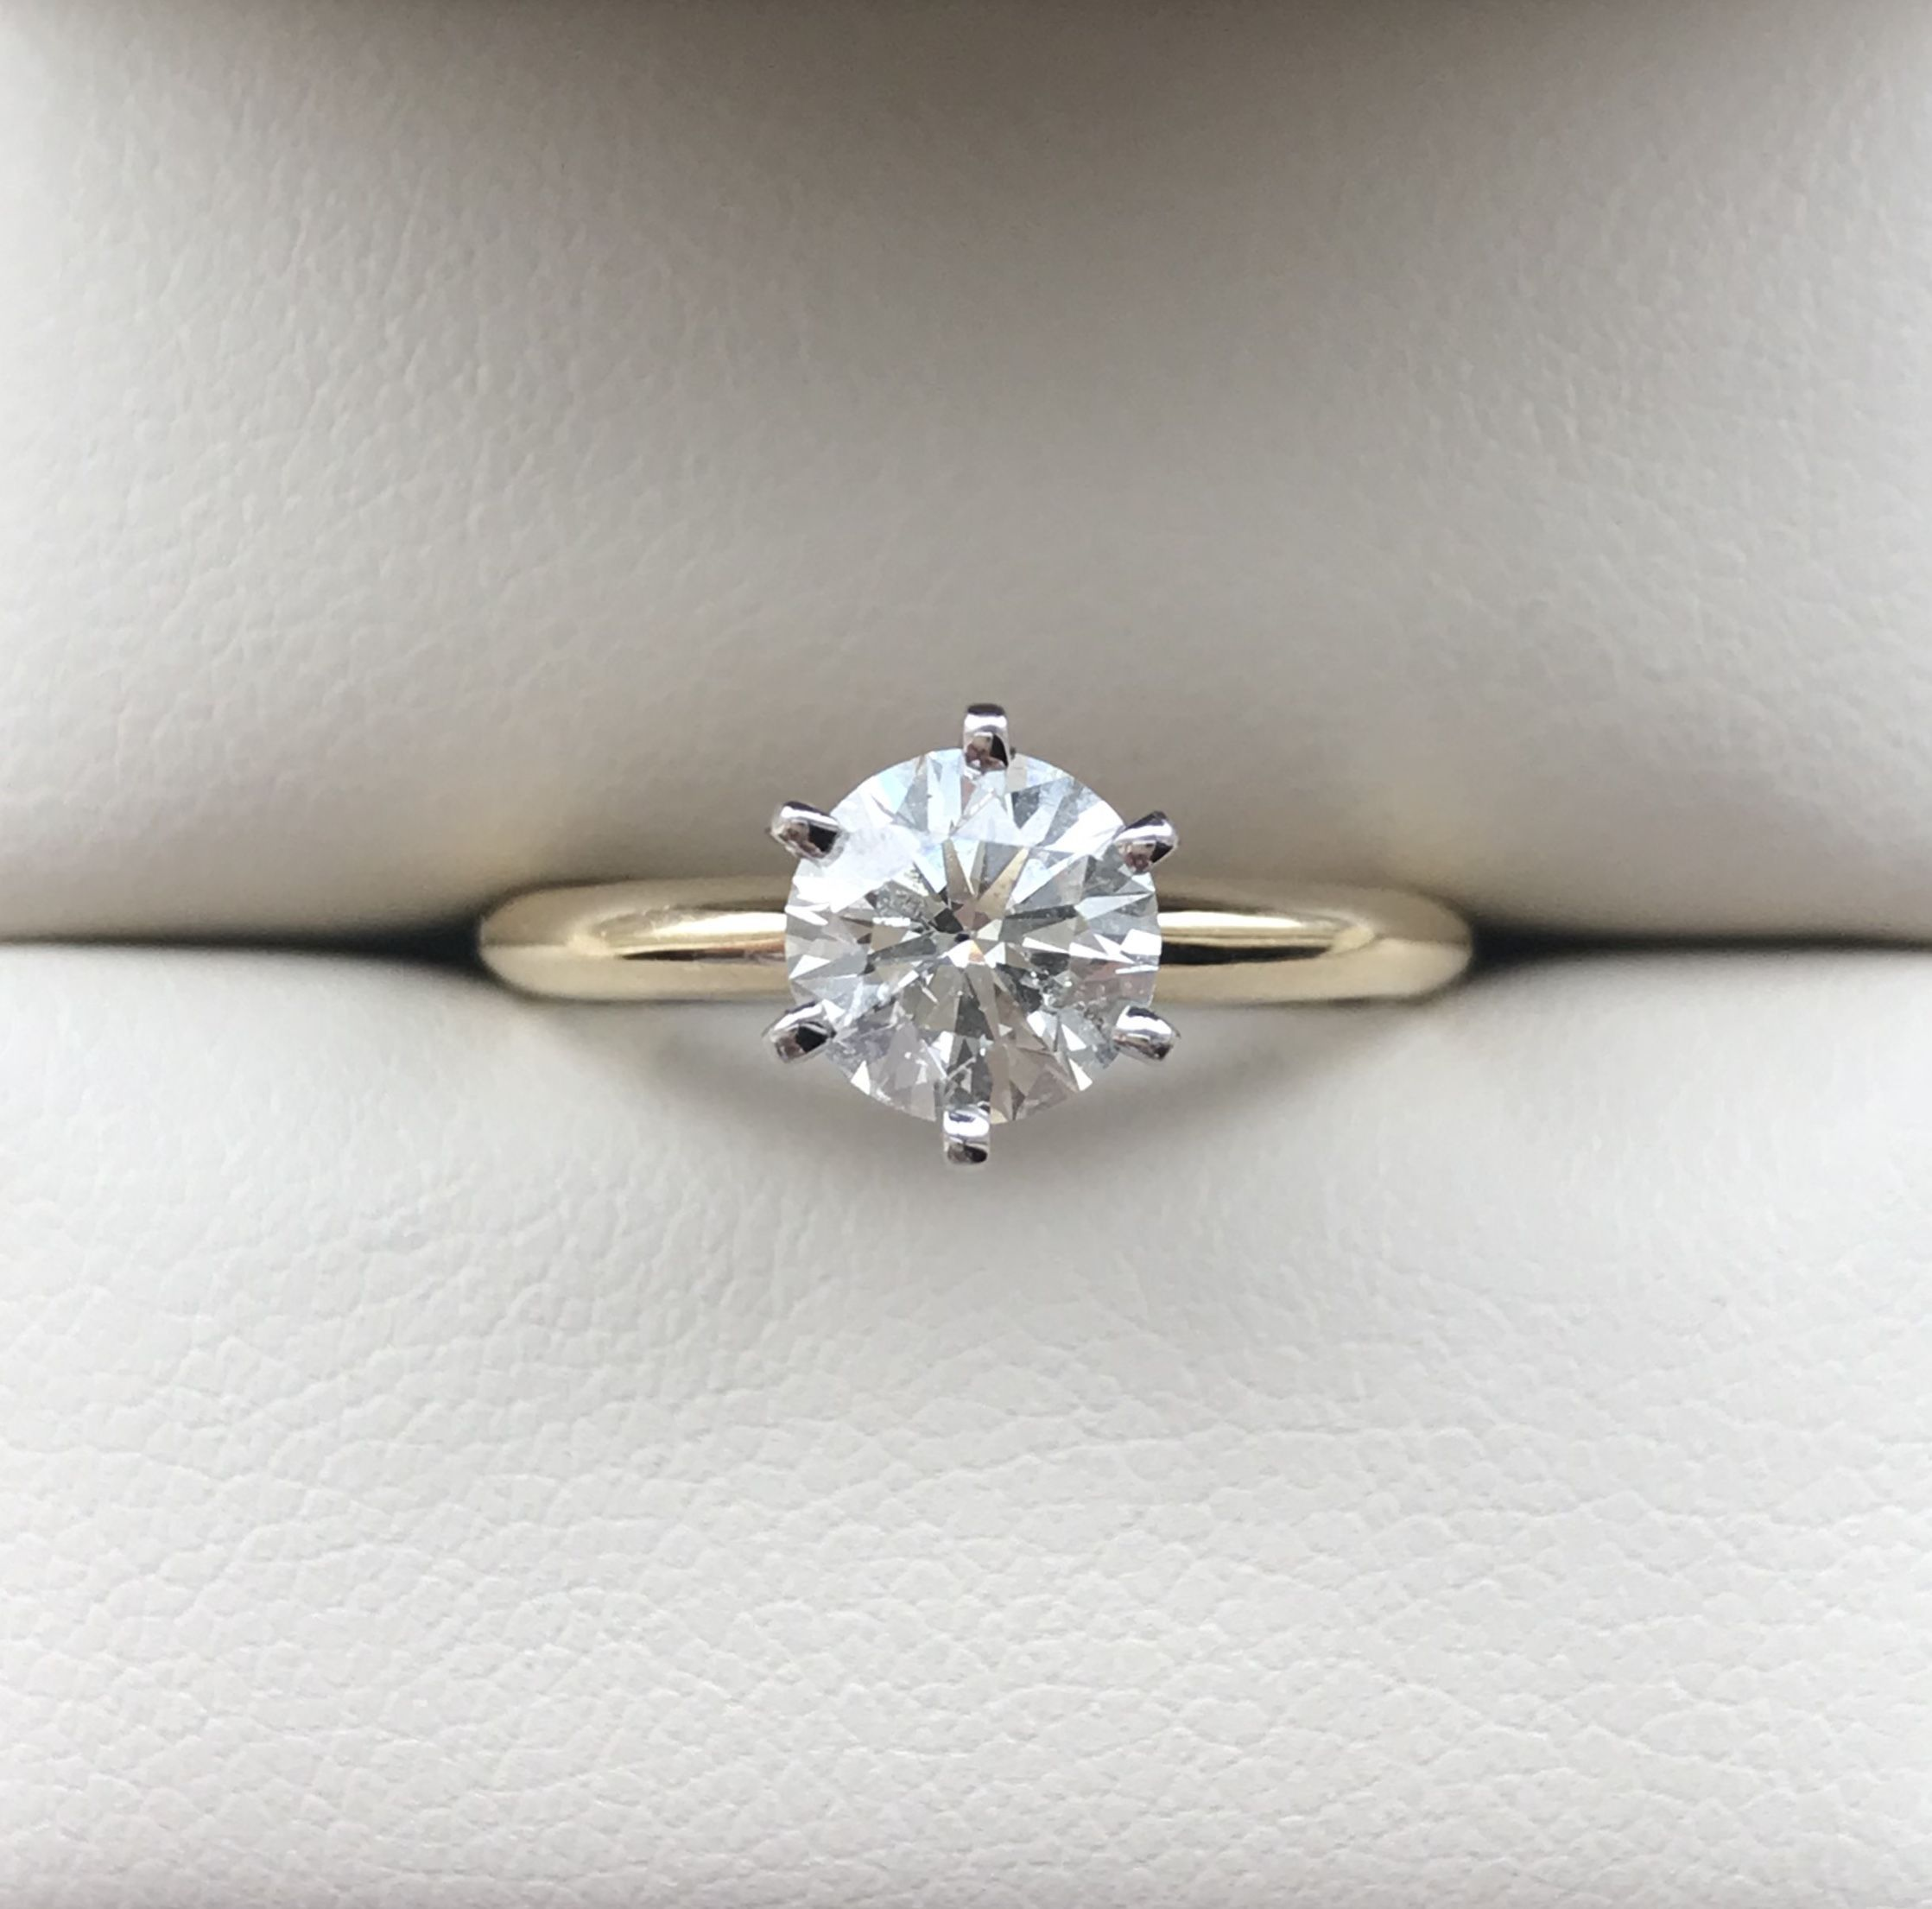 flat photo attachment diamond throughout rings ct viewing of photos prong settings engagement in ring open twist solitaire gallery set